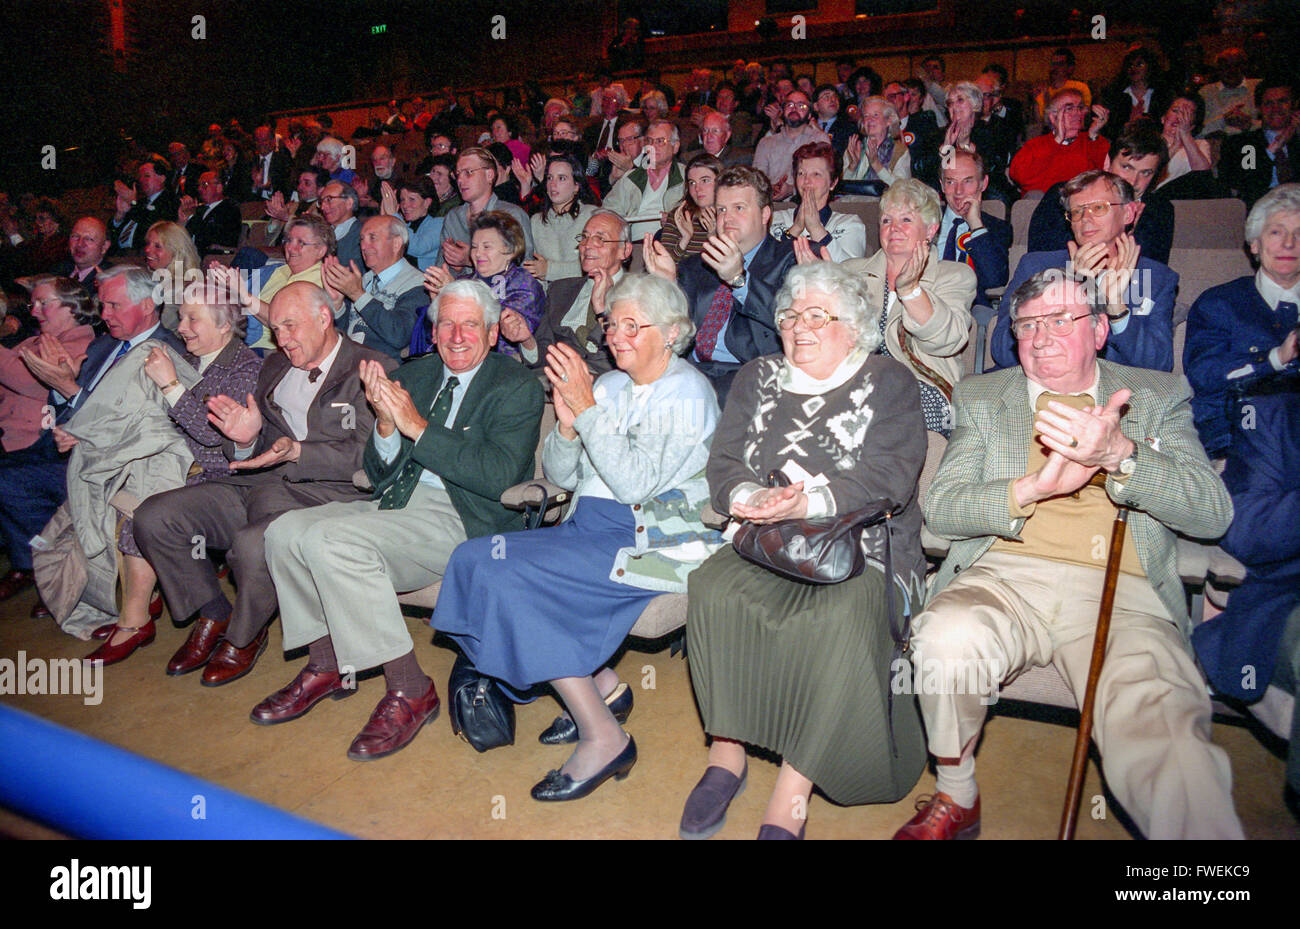 One of the first UKIP conferences in Redhill, Surrey. - Stock Image